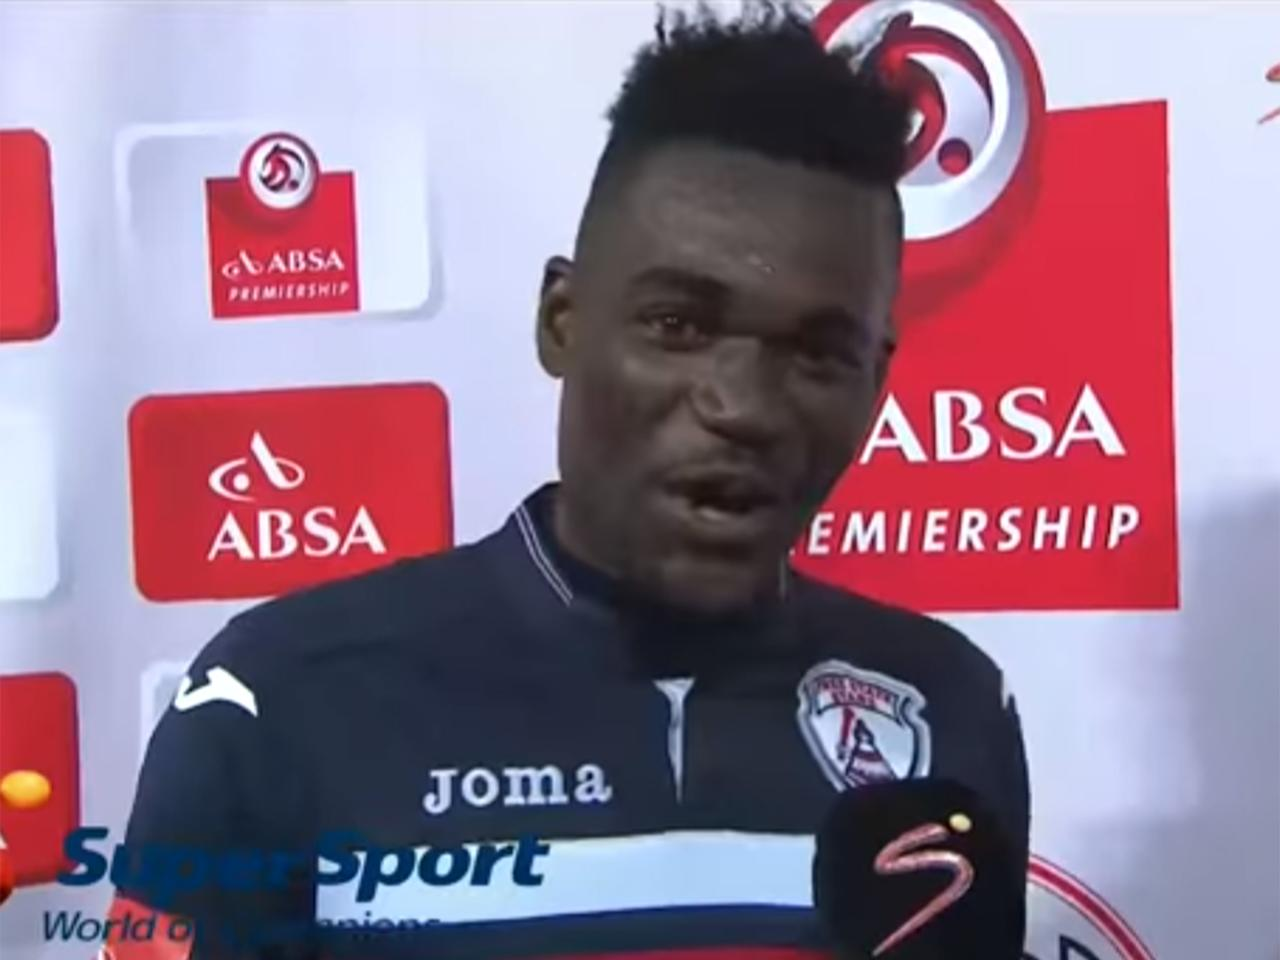 South African footballer Mohammed Anas denies infidelity after thanking wife and 'girlfriend' in interview